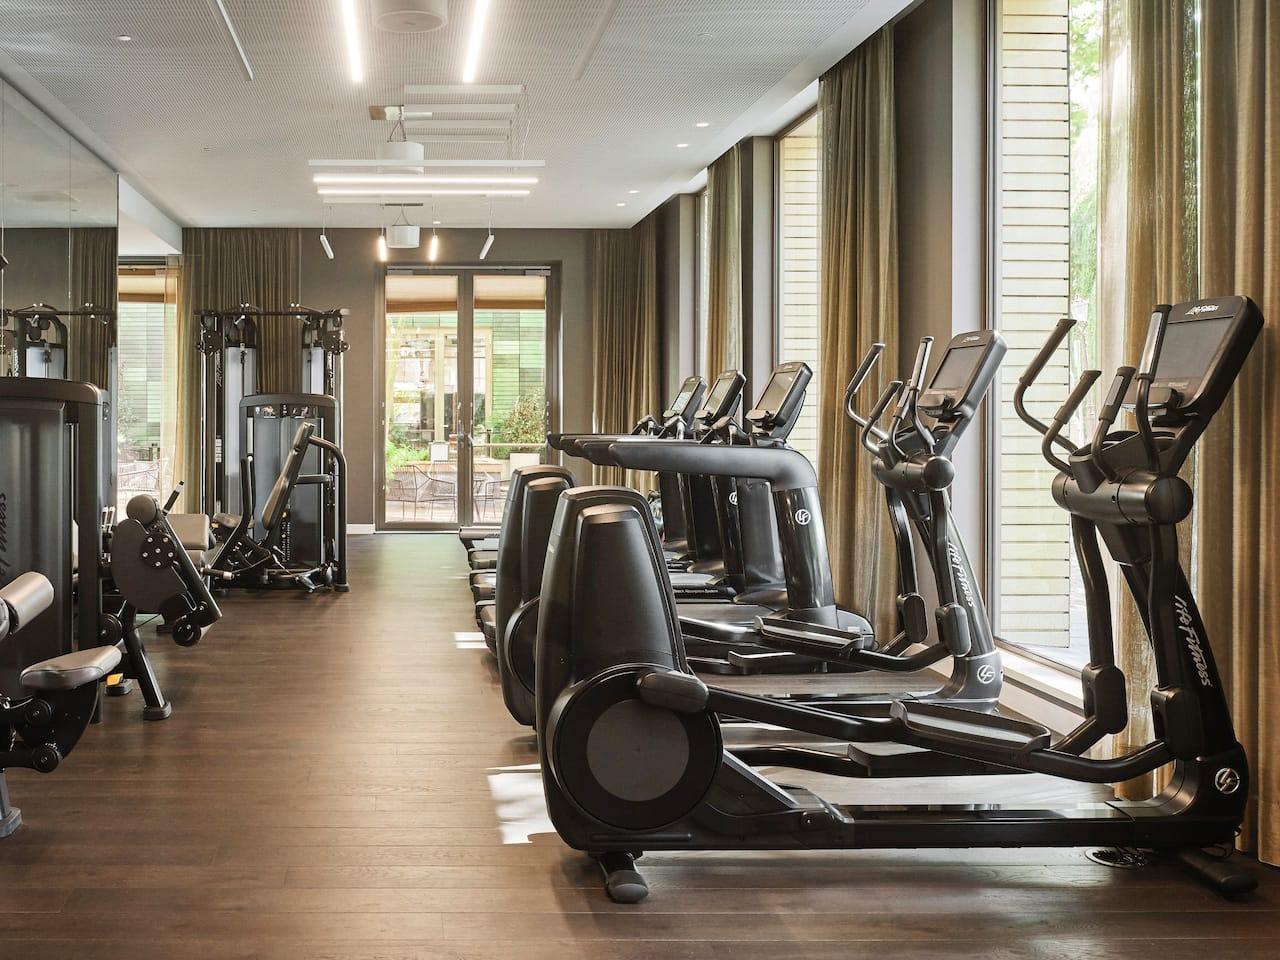 Hyatt Regency | Gym